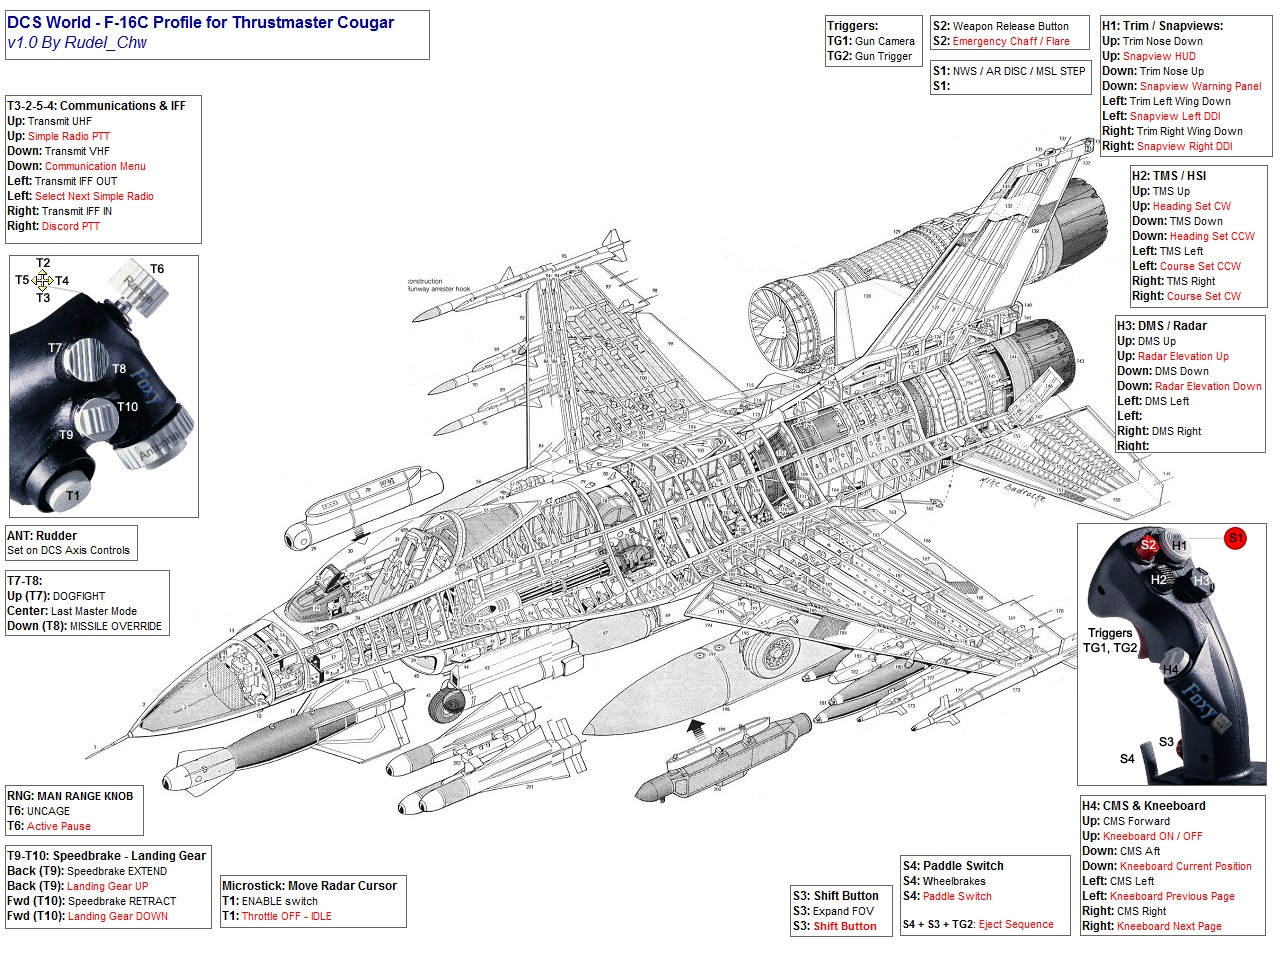 TM Hotas Cougar profile for DCS F-16C